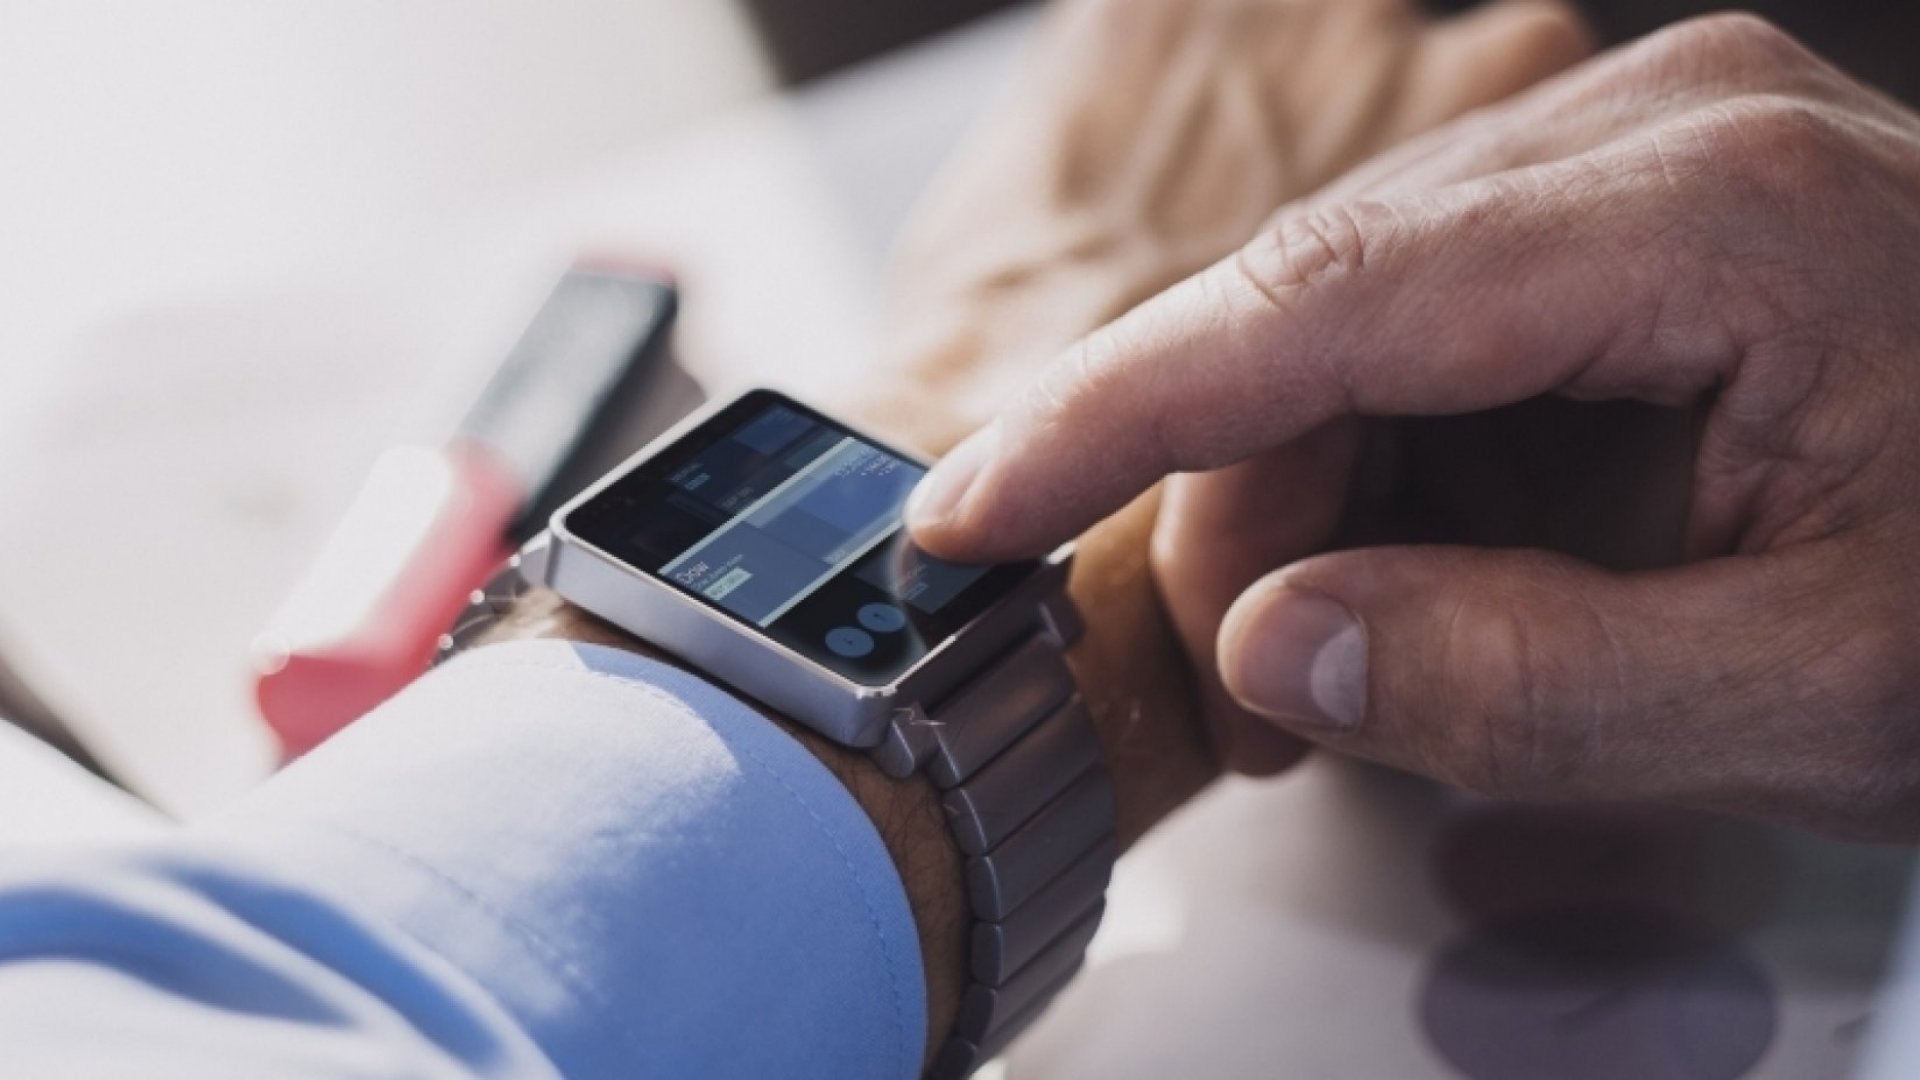 How the Apple Watch Is Paving the Way to a New Generation of Wearable Tech